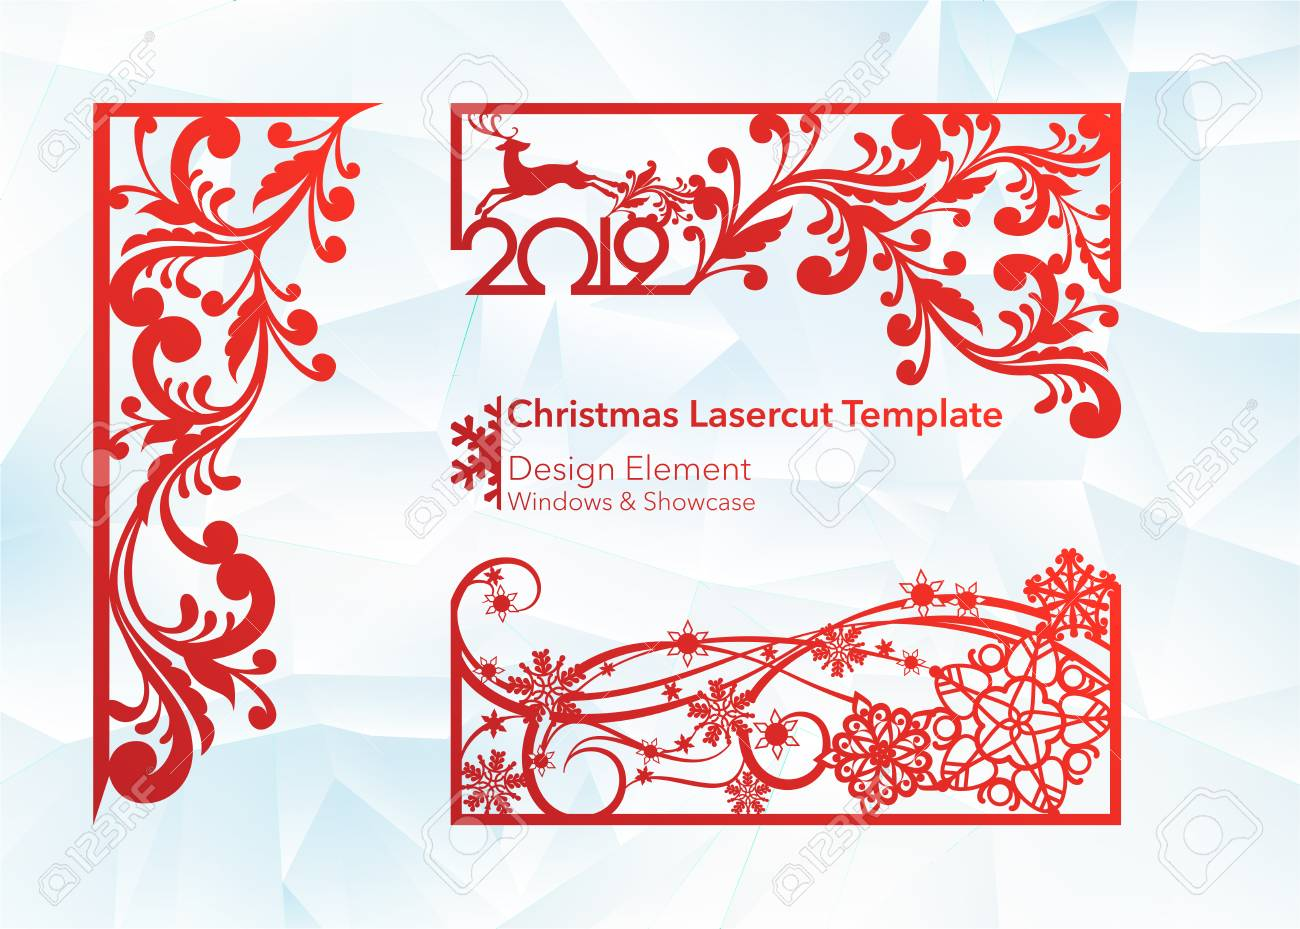 Laser cutting design for Christmas and New Year. Silhouette cut. A set of template of corner and horizontal elements to create a festive decor. Patterns for decorating a rectangular frame and border, windows, shop windows. Vector illustration - 113920368